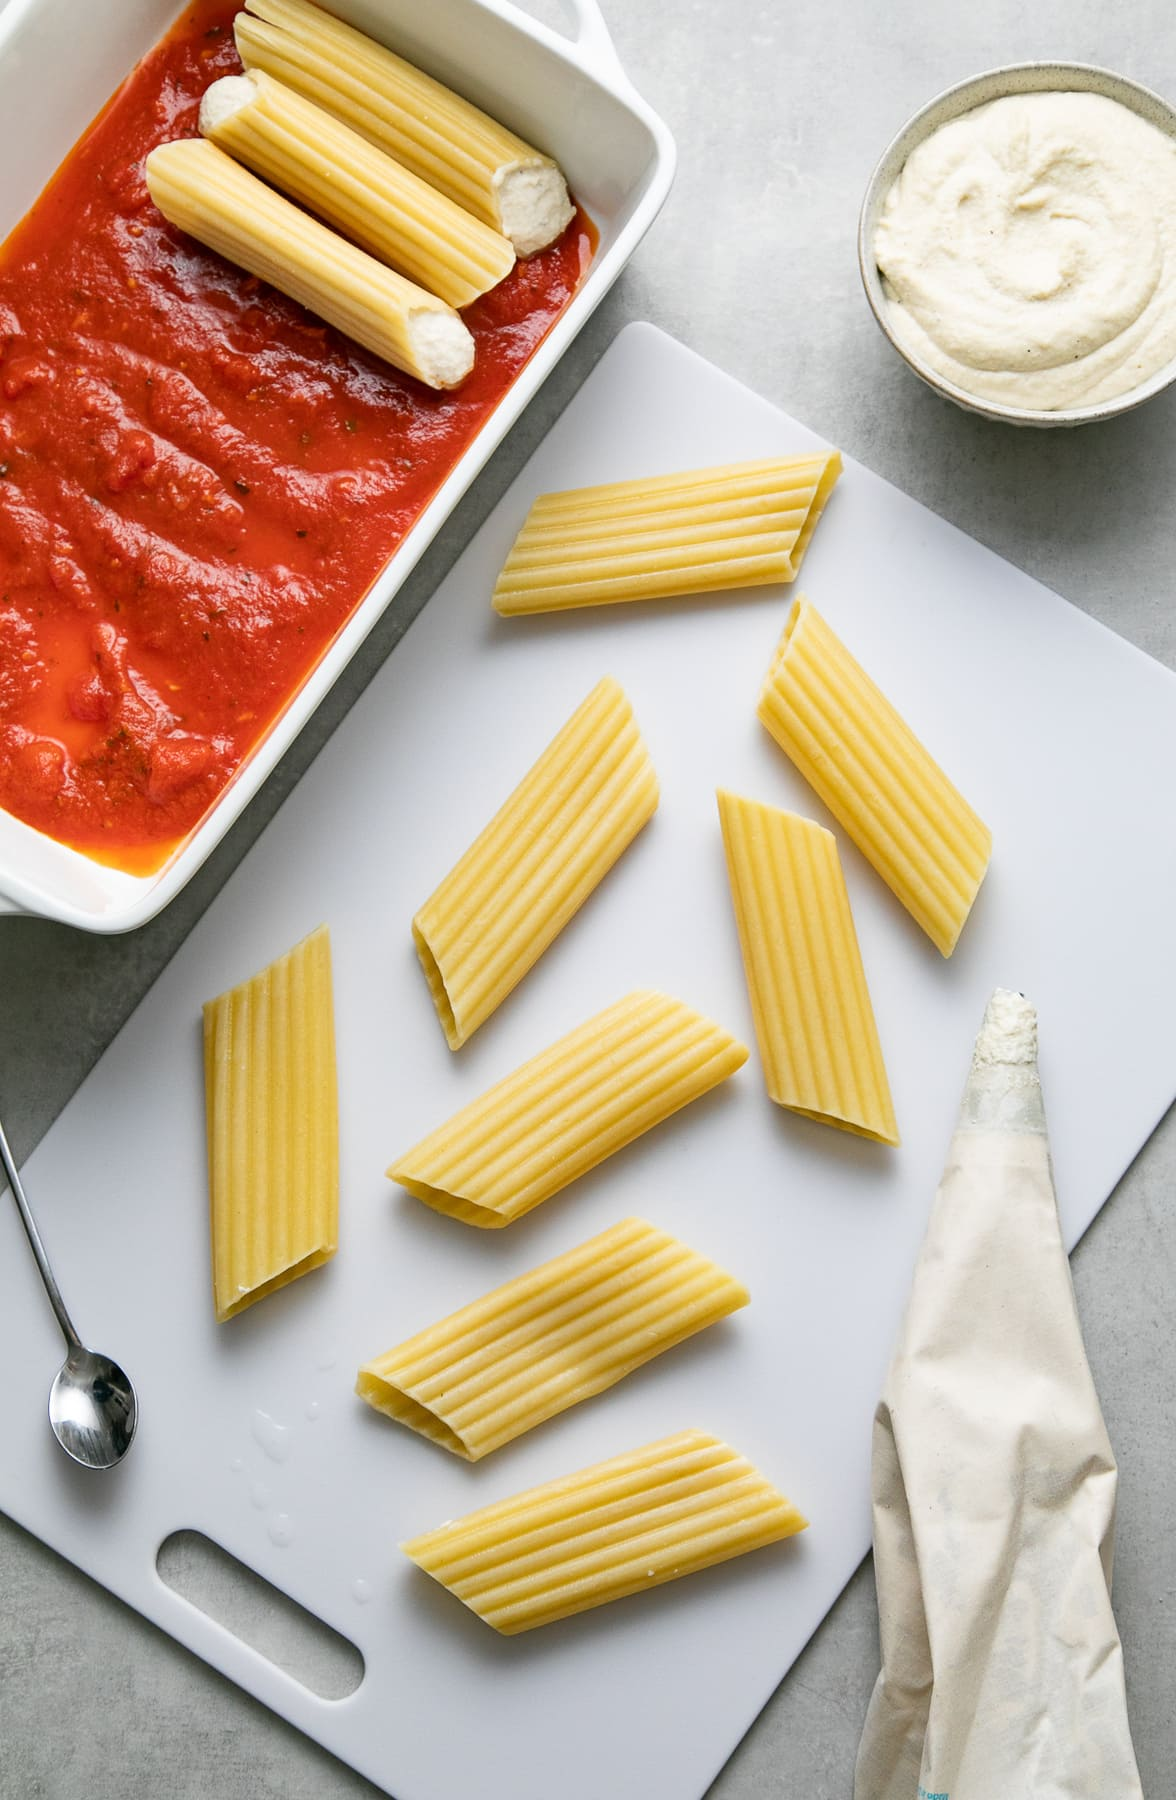 top down view showing the process of making vegan manicotti recipe.